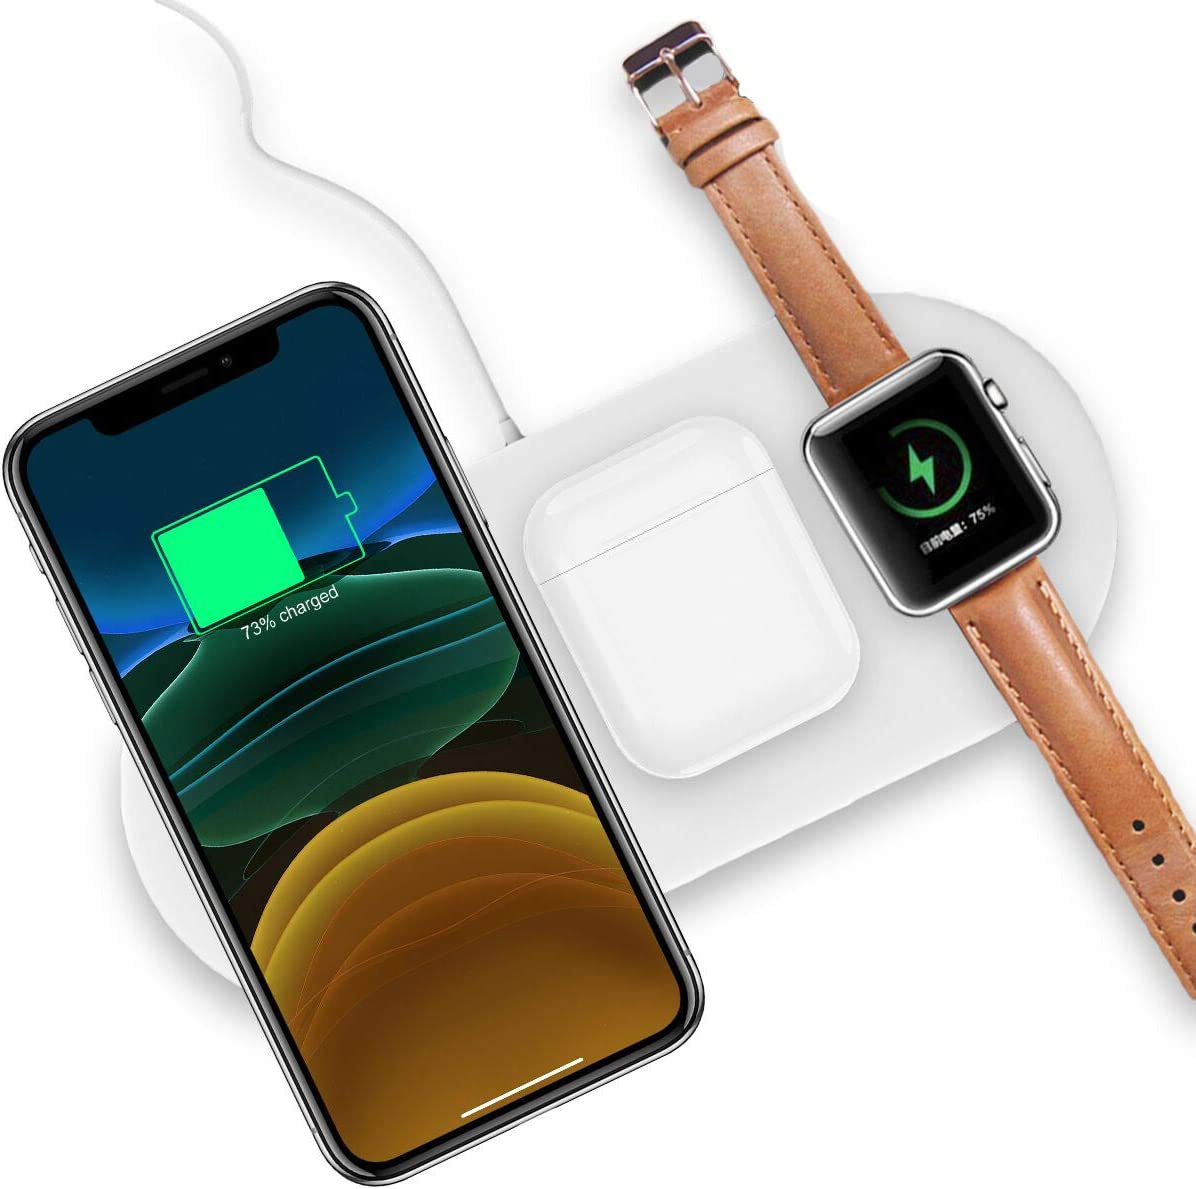 AICase Qi Wireless Charger,3-in-1 Charging Pad for Air Pods Apple Watch Series 5/4/3/2/1 iPhone 11/11 Pro/11 Pro Max/XR/X/8 Galaxy Note10/9 and More Devices Wireless Charger Dock (White)